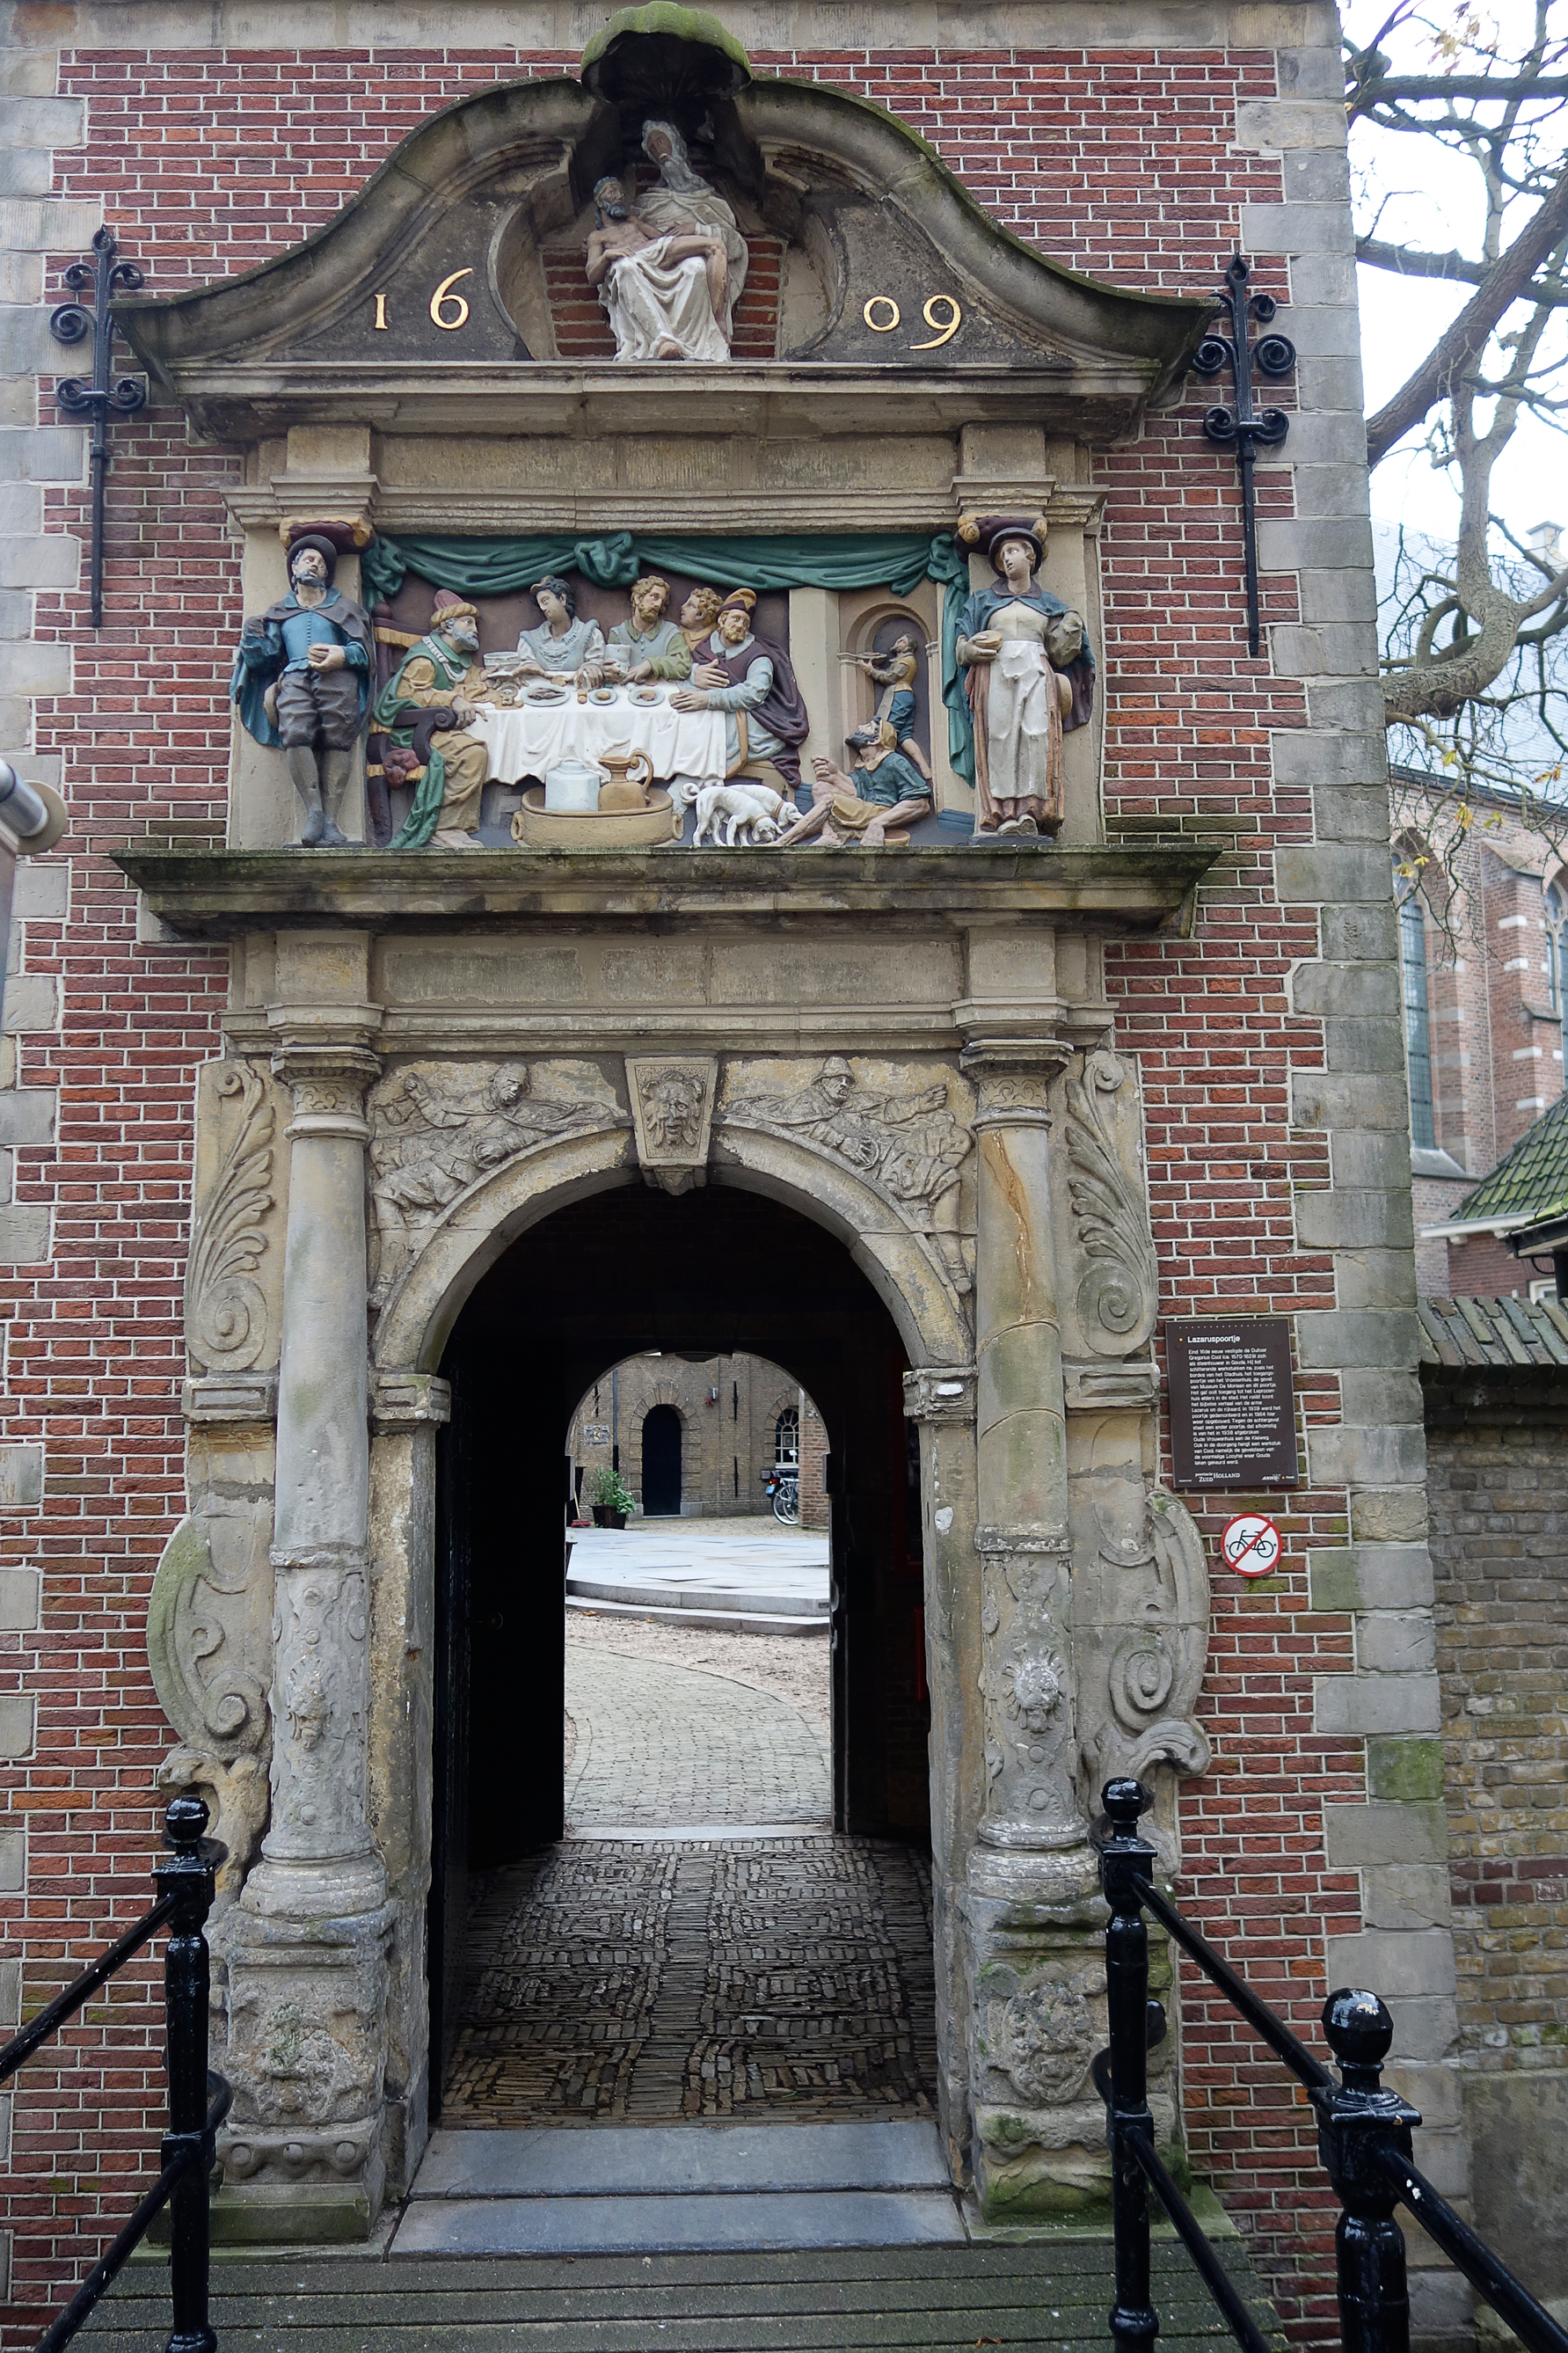 Thursday Doors - Gouda Doors with a History & Thursday Doors u2013 Museum Doors | WitchWithaView | Photography